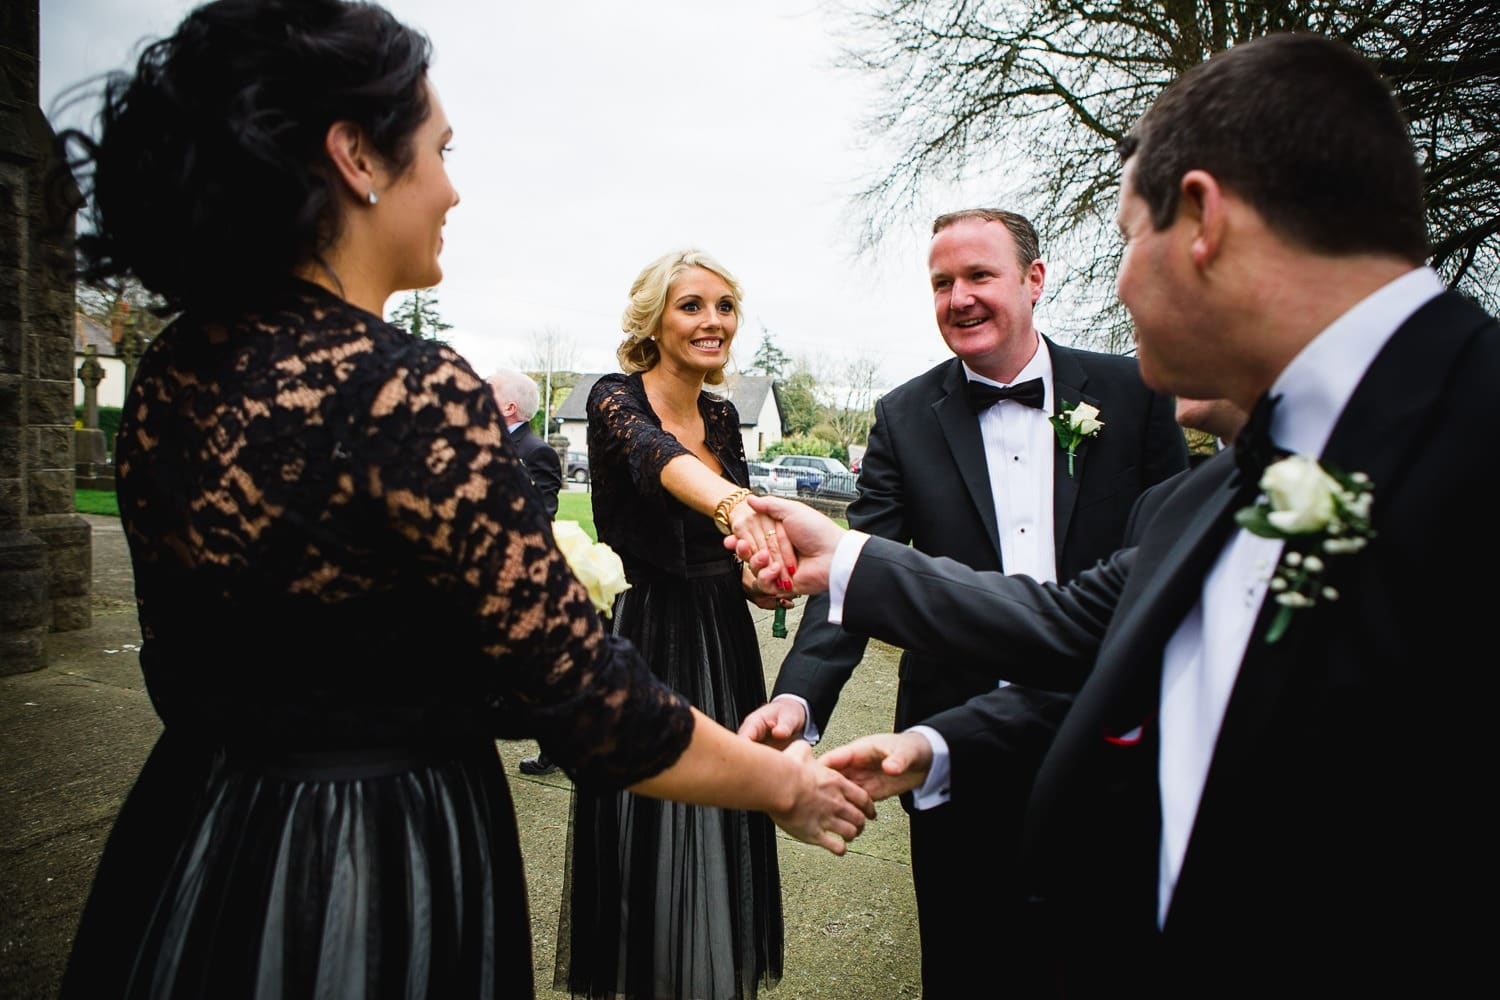 GARETH MCGAUGHEY PHOTOGRAPHY - BELLINGHAM CASTLE WEDDING 00037